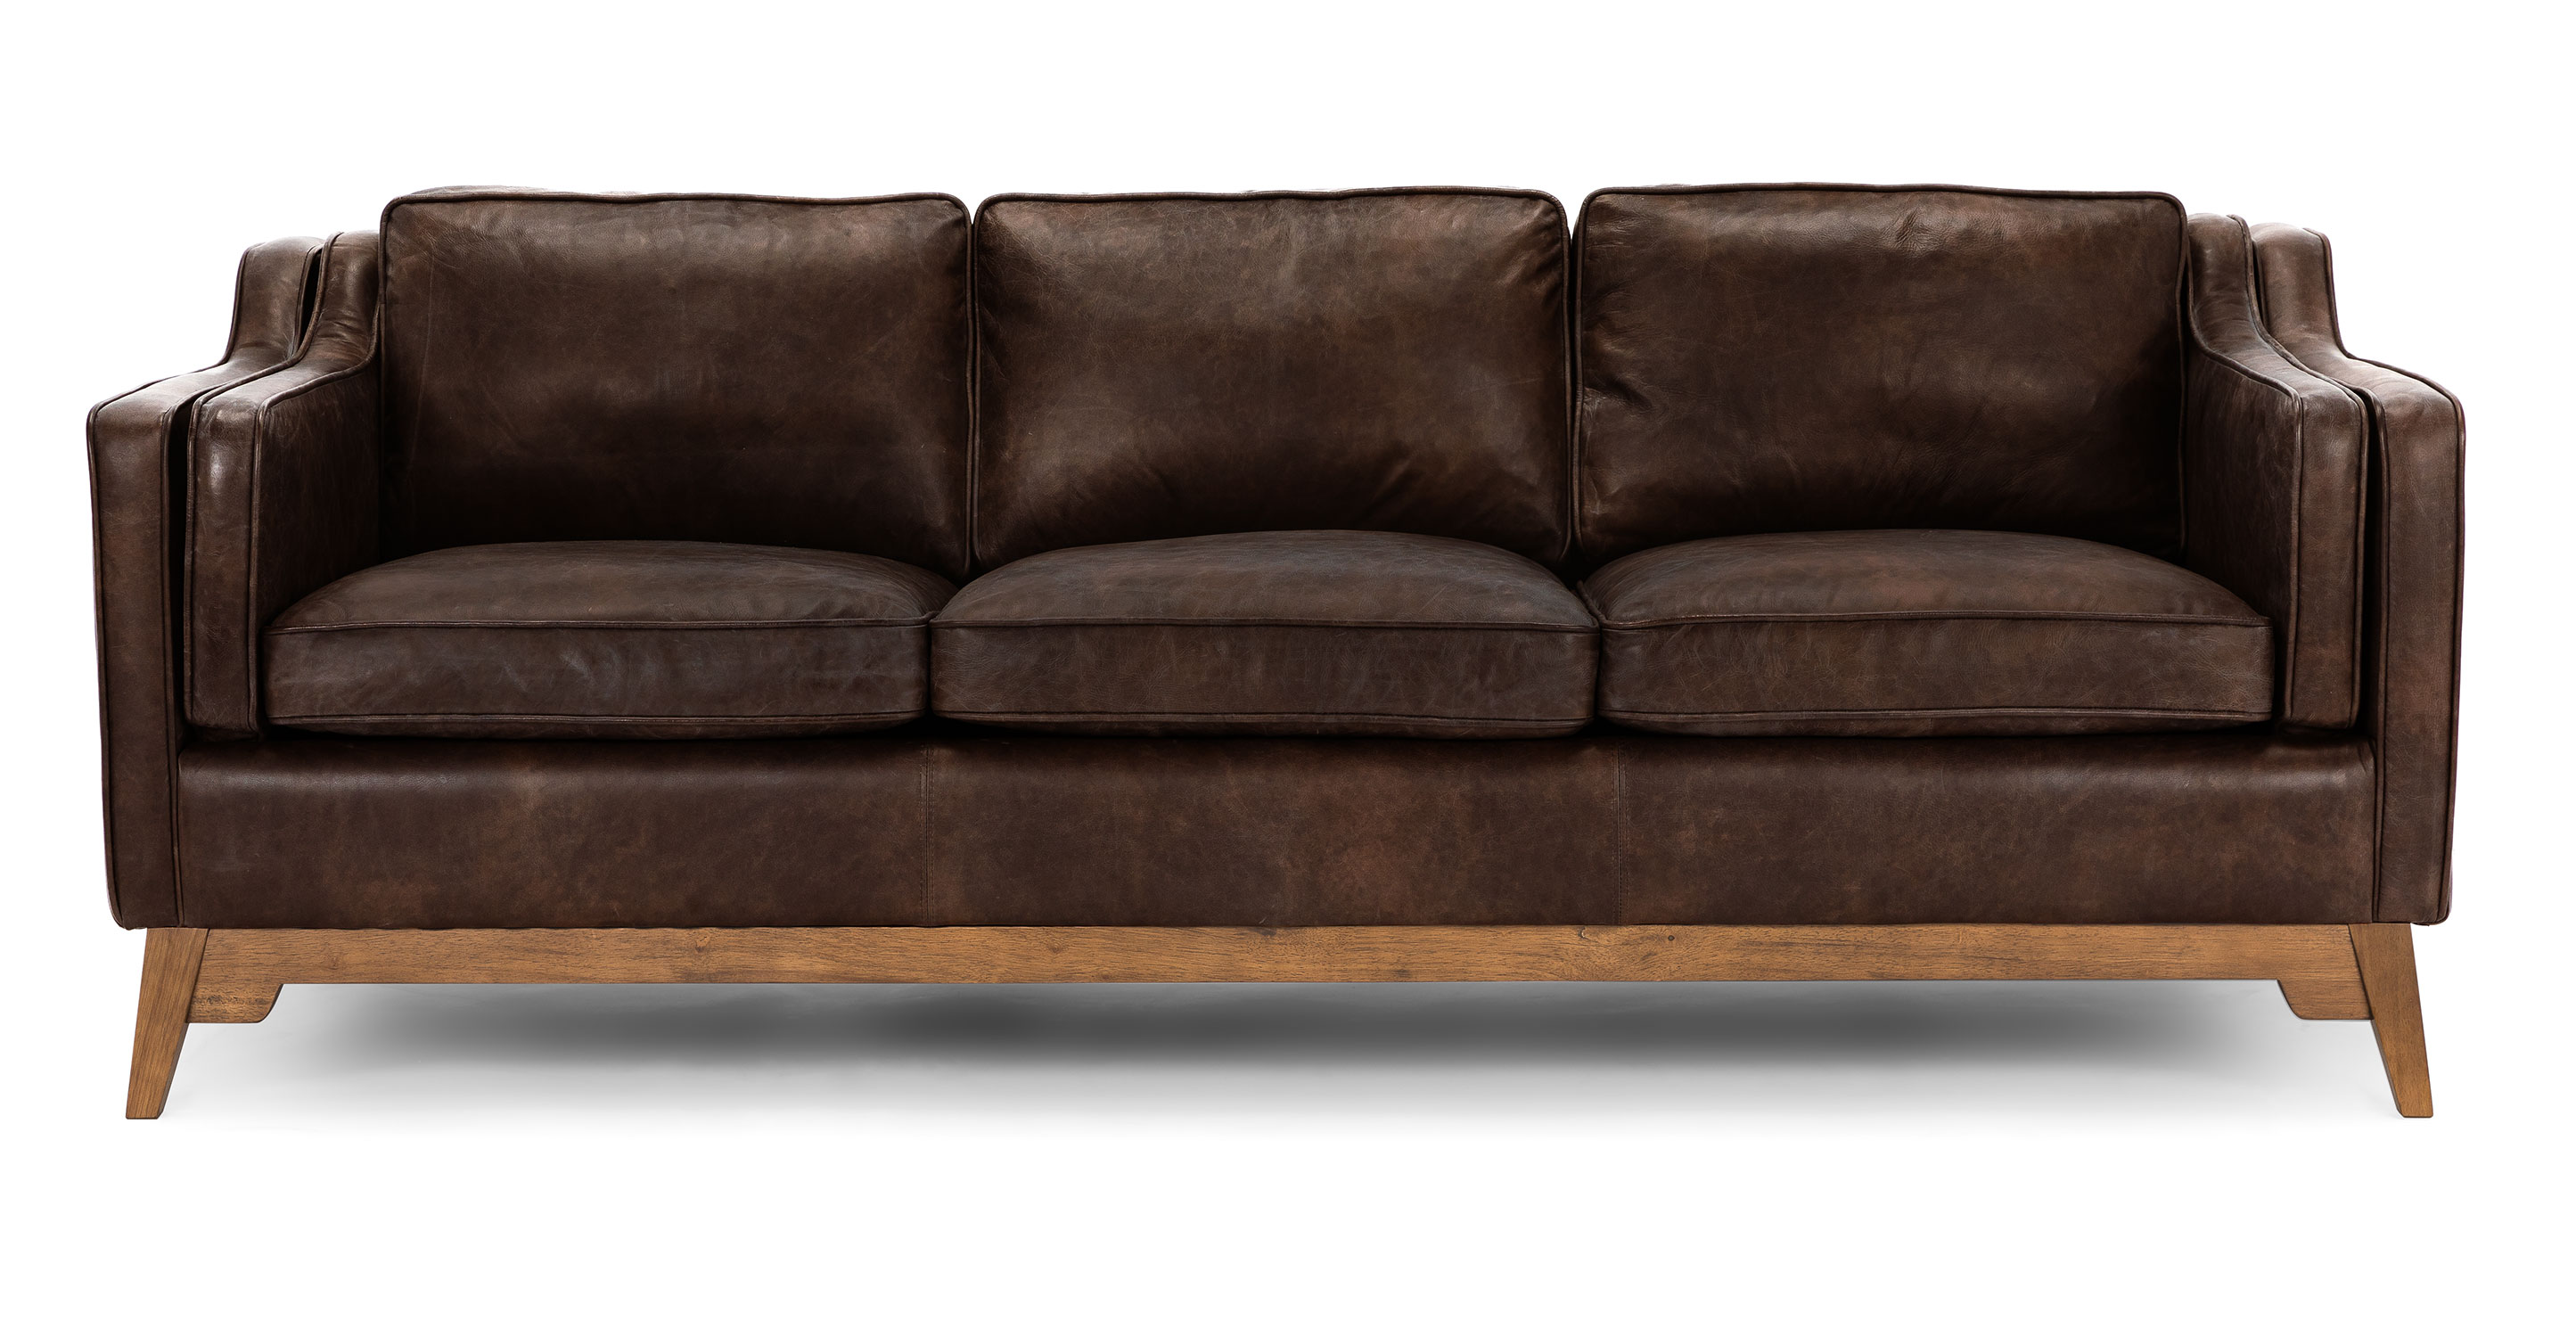 Sofa Couch Brown Leather Sofa Upholstered Article Worthington Modern Furniture